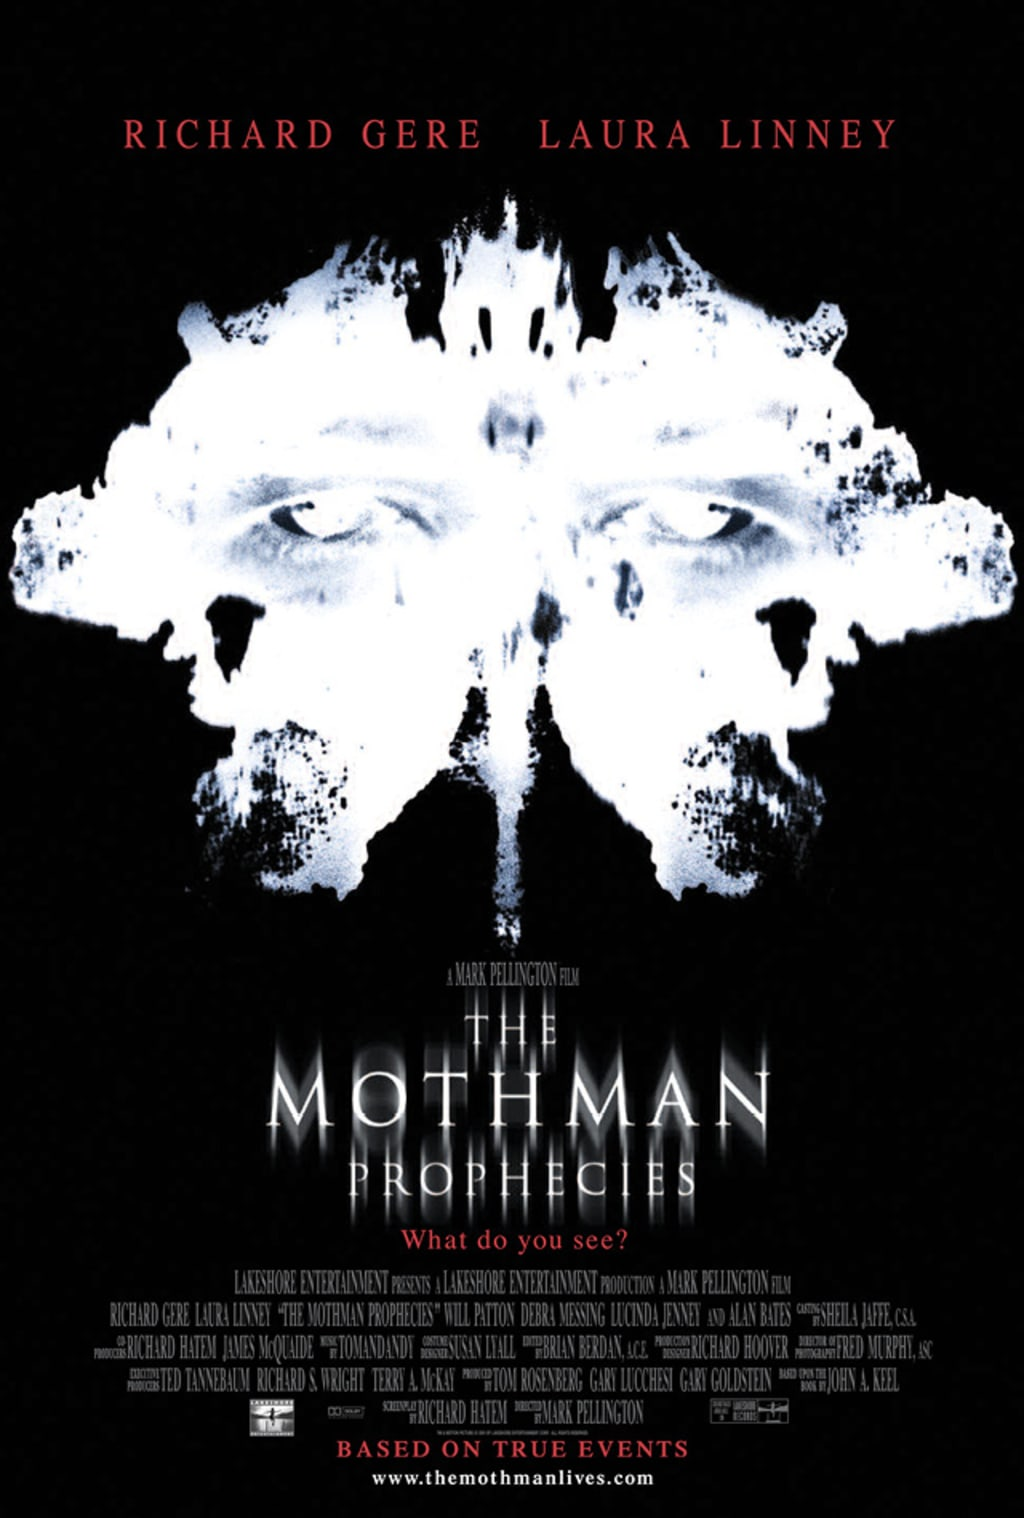 Reed Alexander's Horror Review of 'The Mothman Prophecies' (2002)